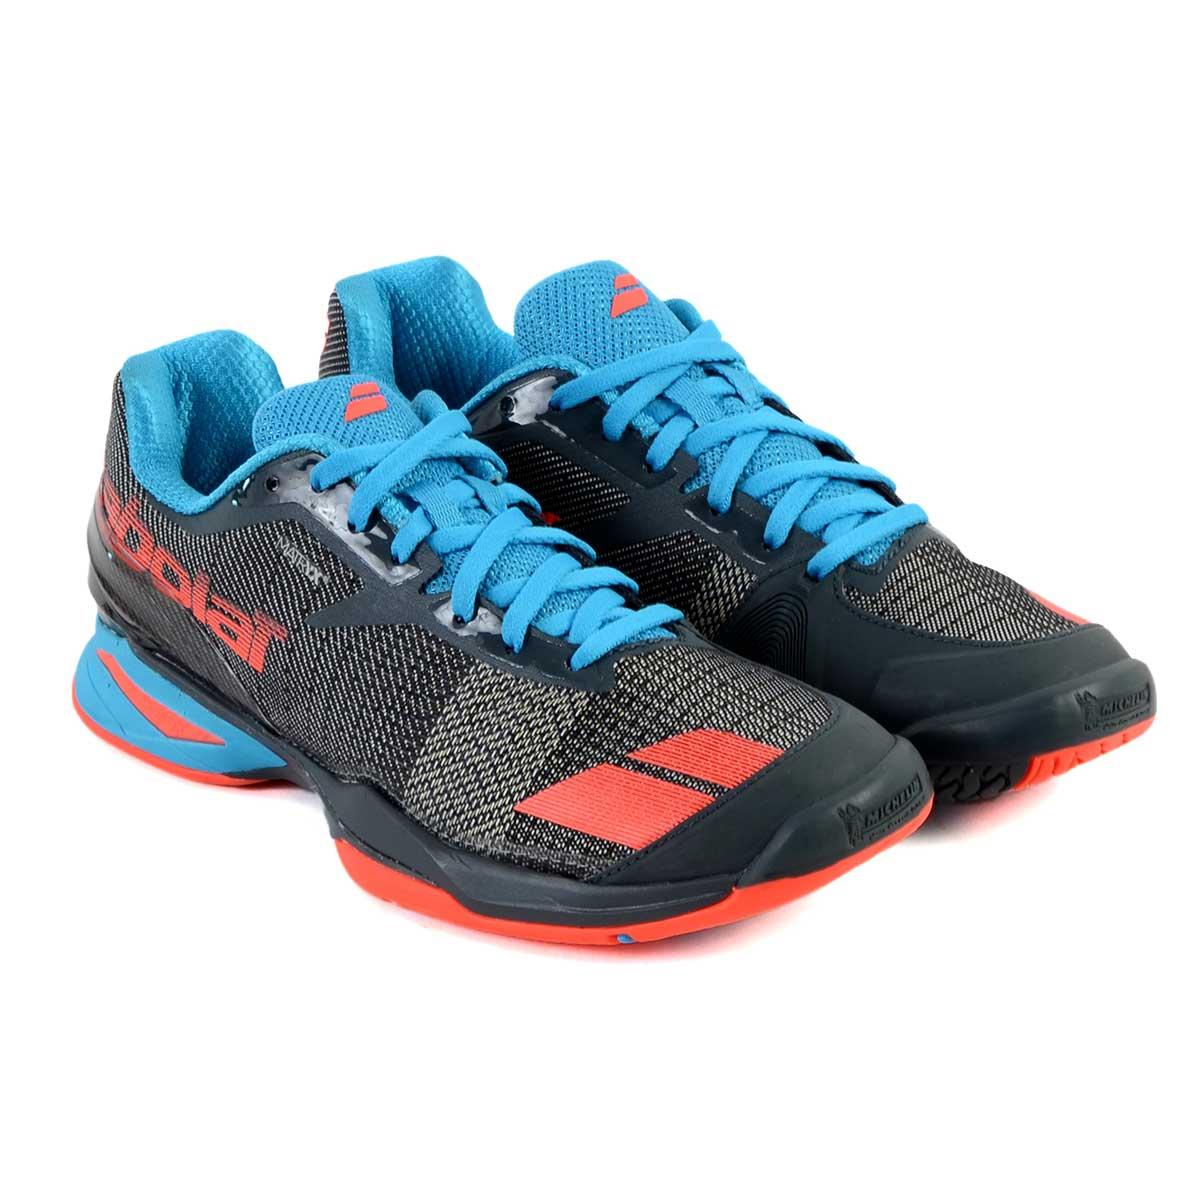 buy babolat jet all court tennis shoes online india rh sportsjam in Jet  Groceries jet shoes online reviews 4f82fea03